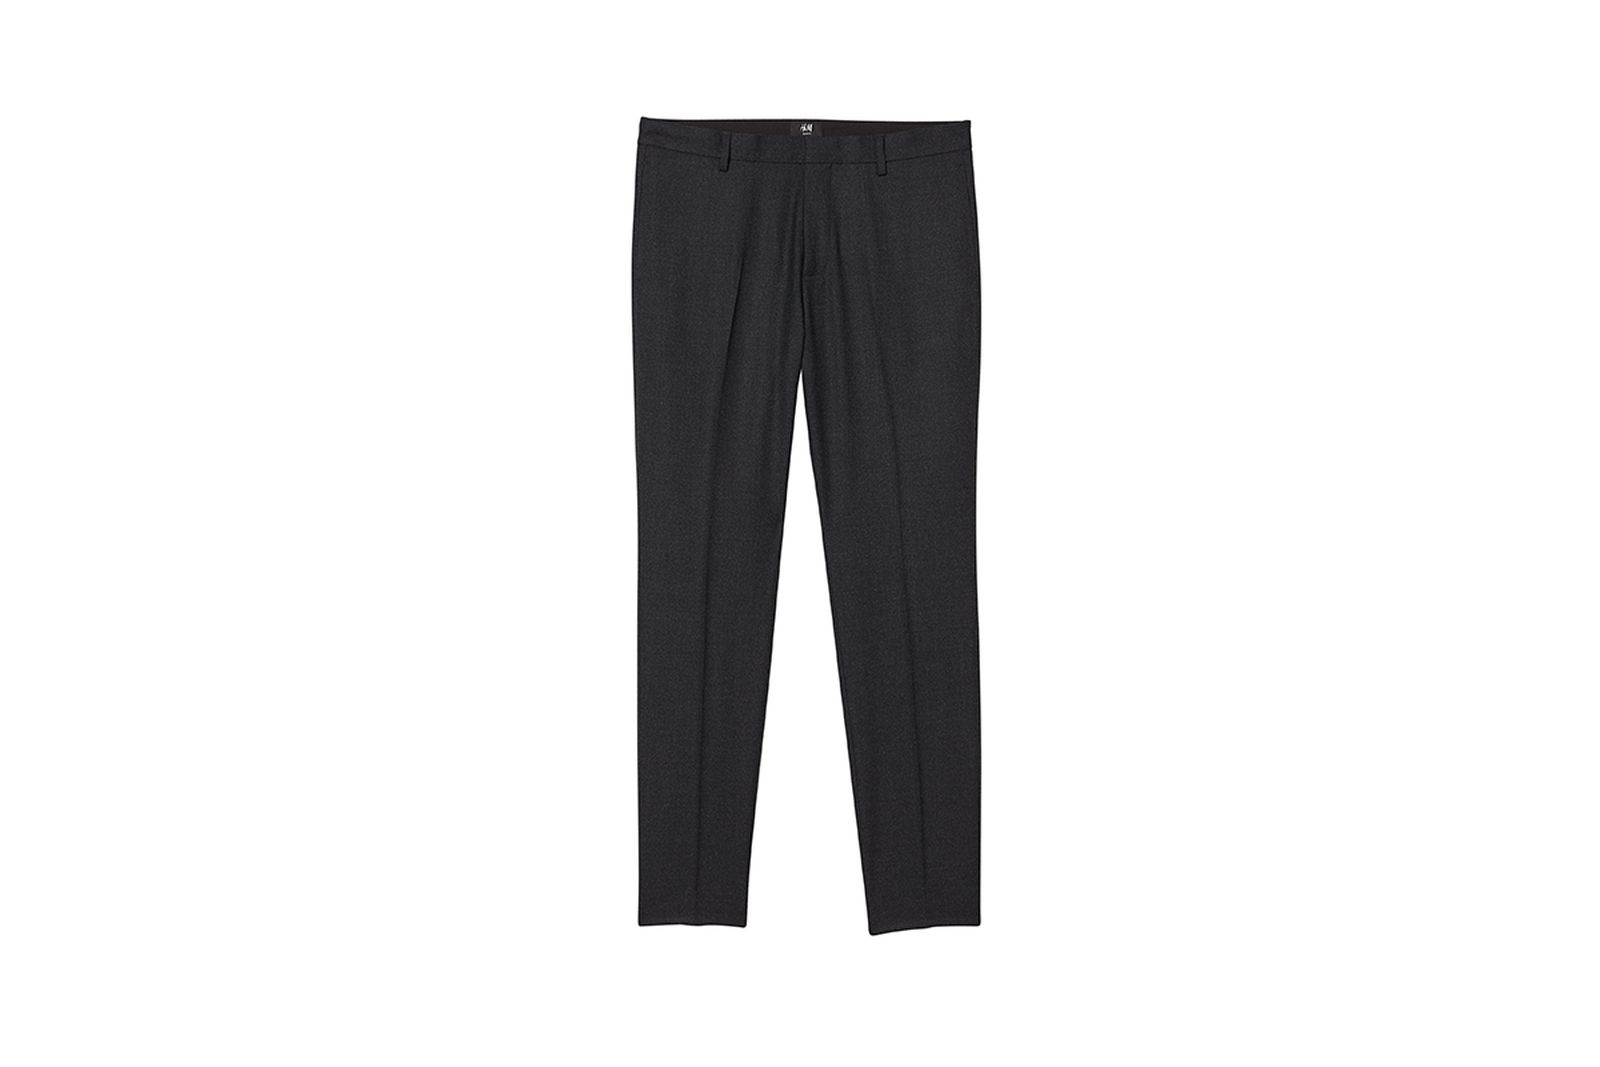 HM Slim Fit Wool Blend Pants Gift Guide h&m holiday